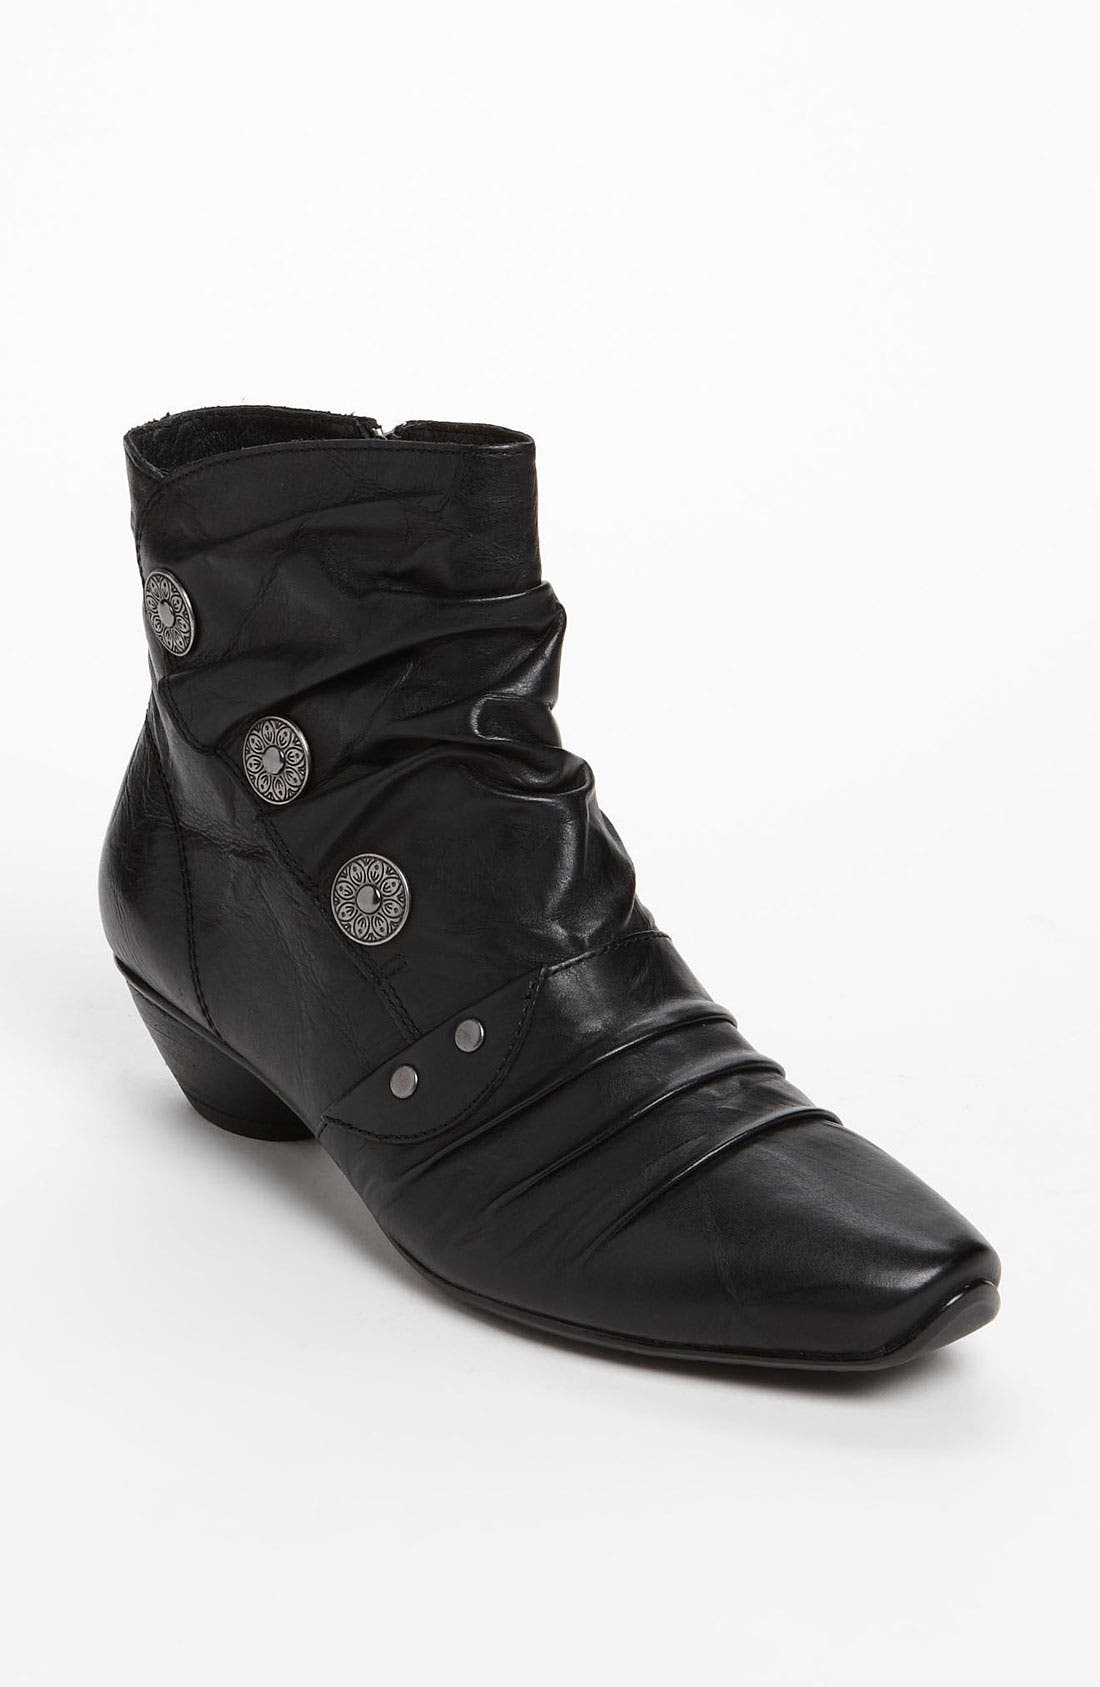 Alternate Image 1 Selected - Josef Seibel 'Tina 42' Boot